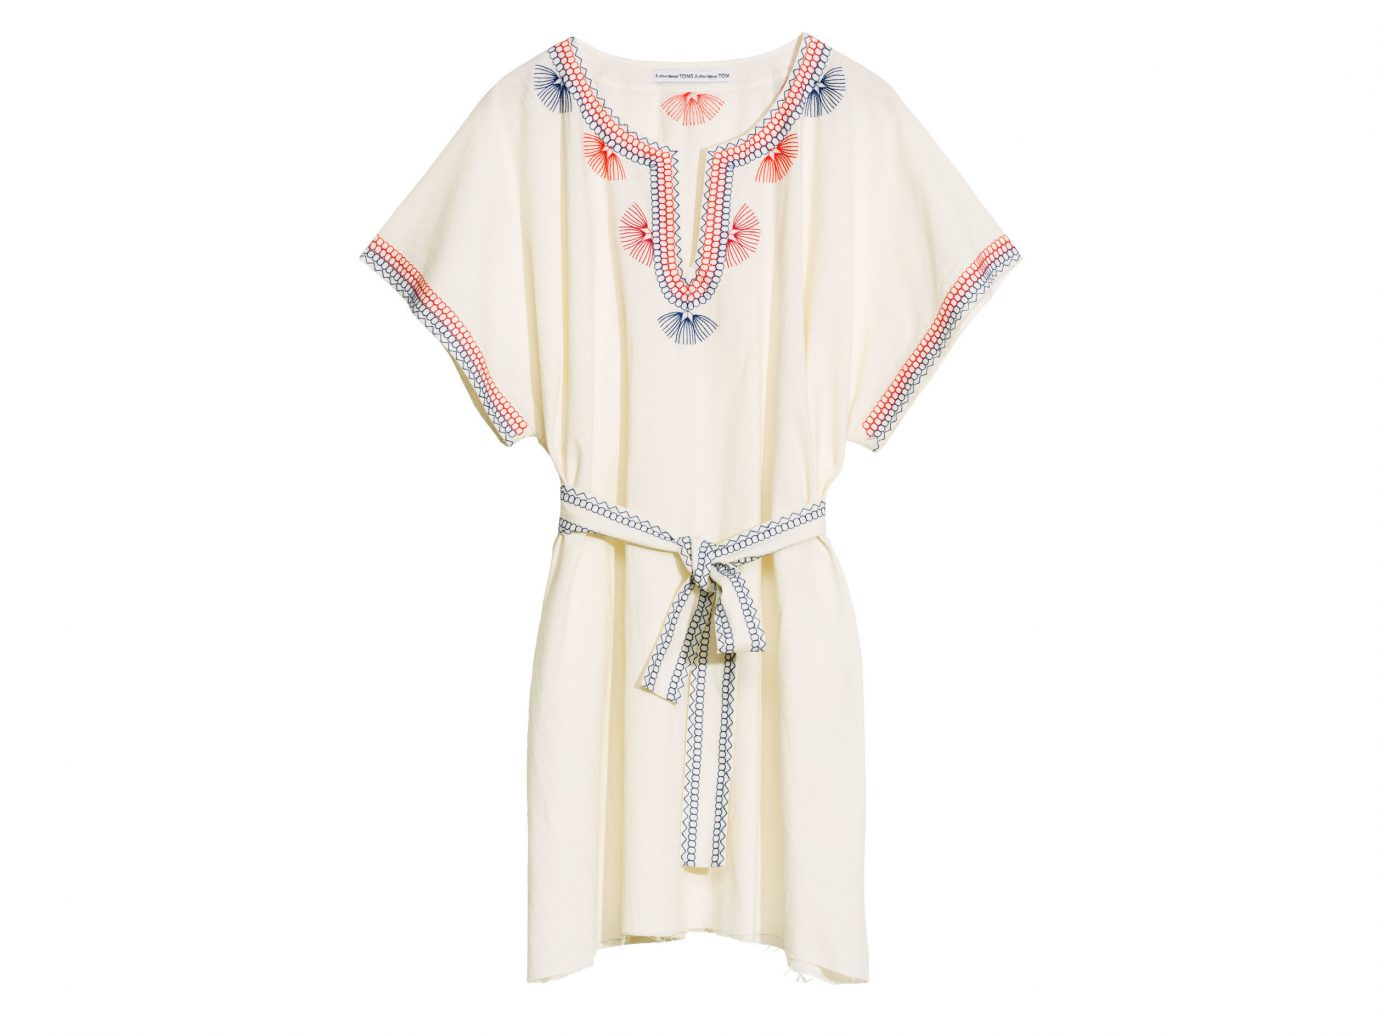 Style + Design clothing product gown sleeve costume dress robe outerwear